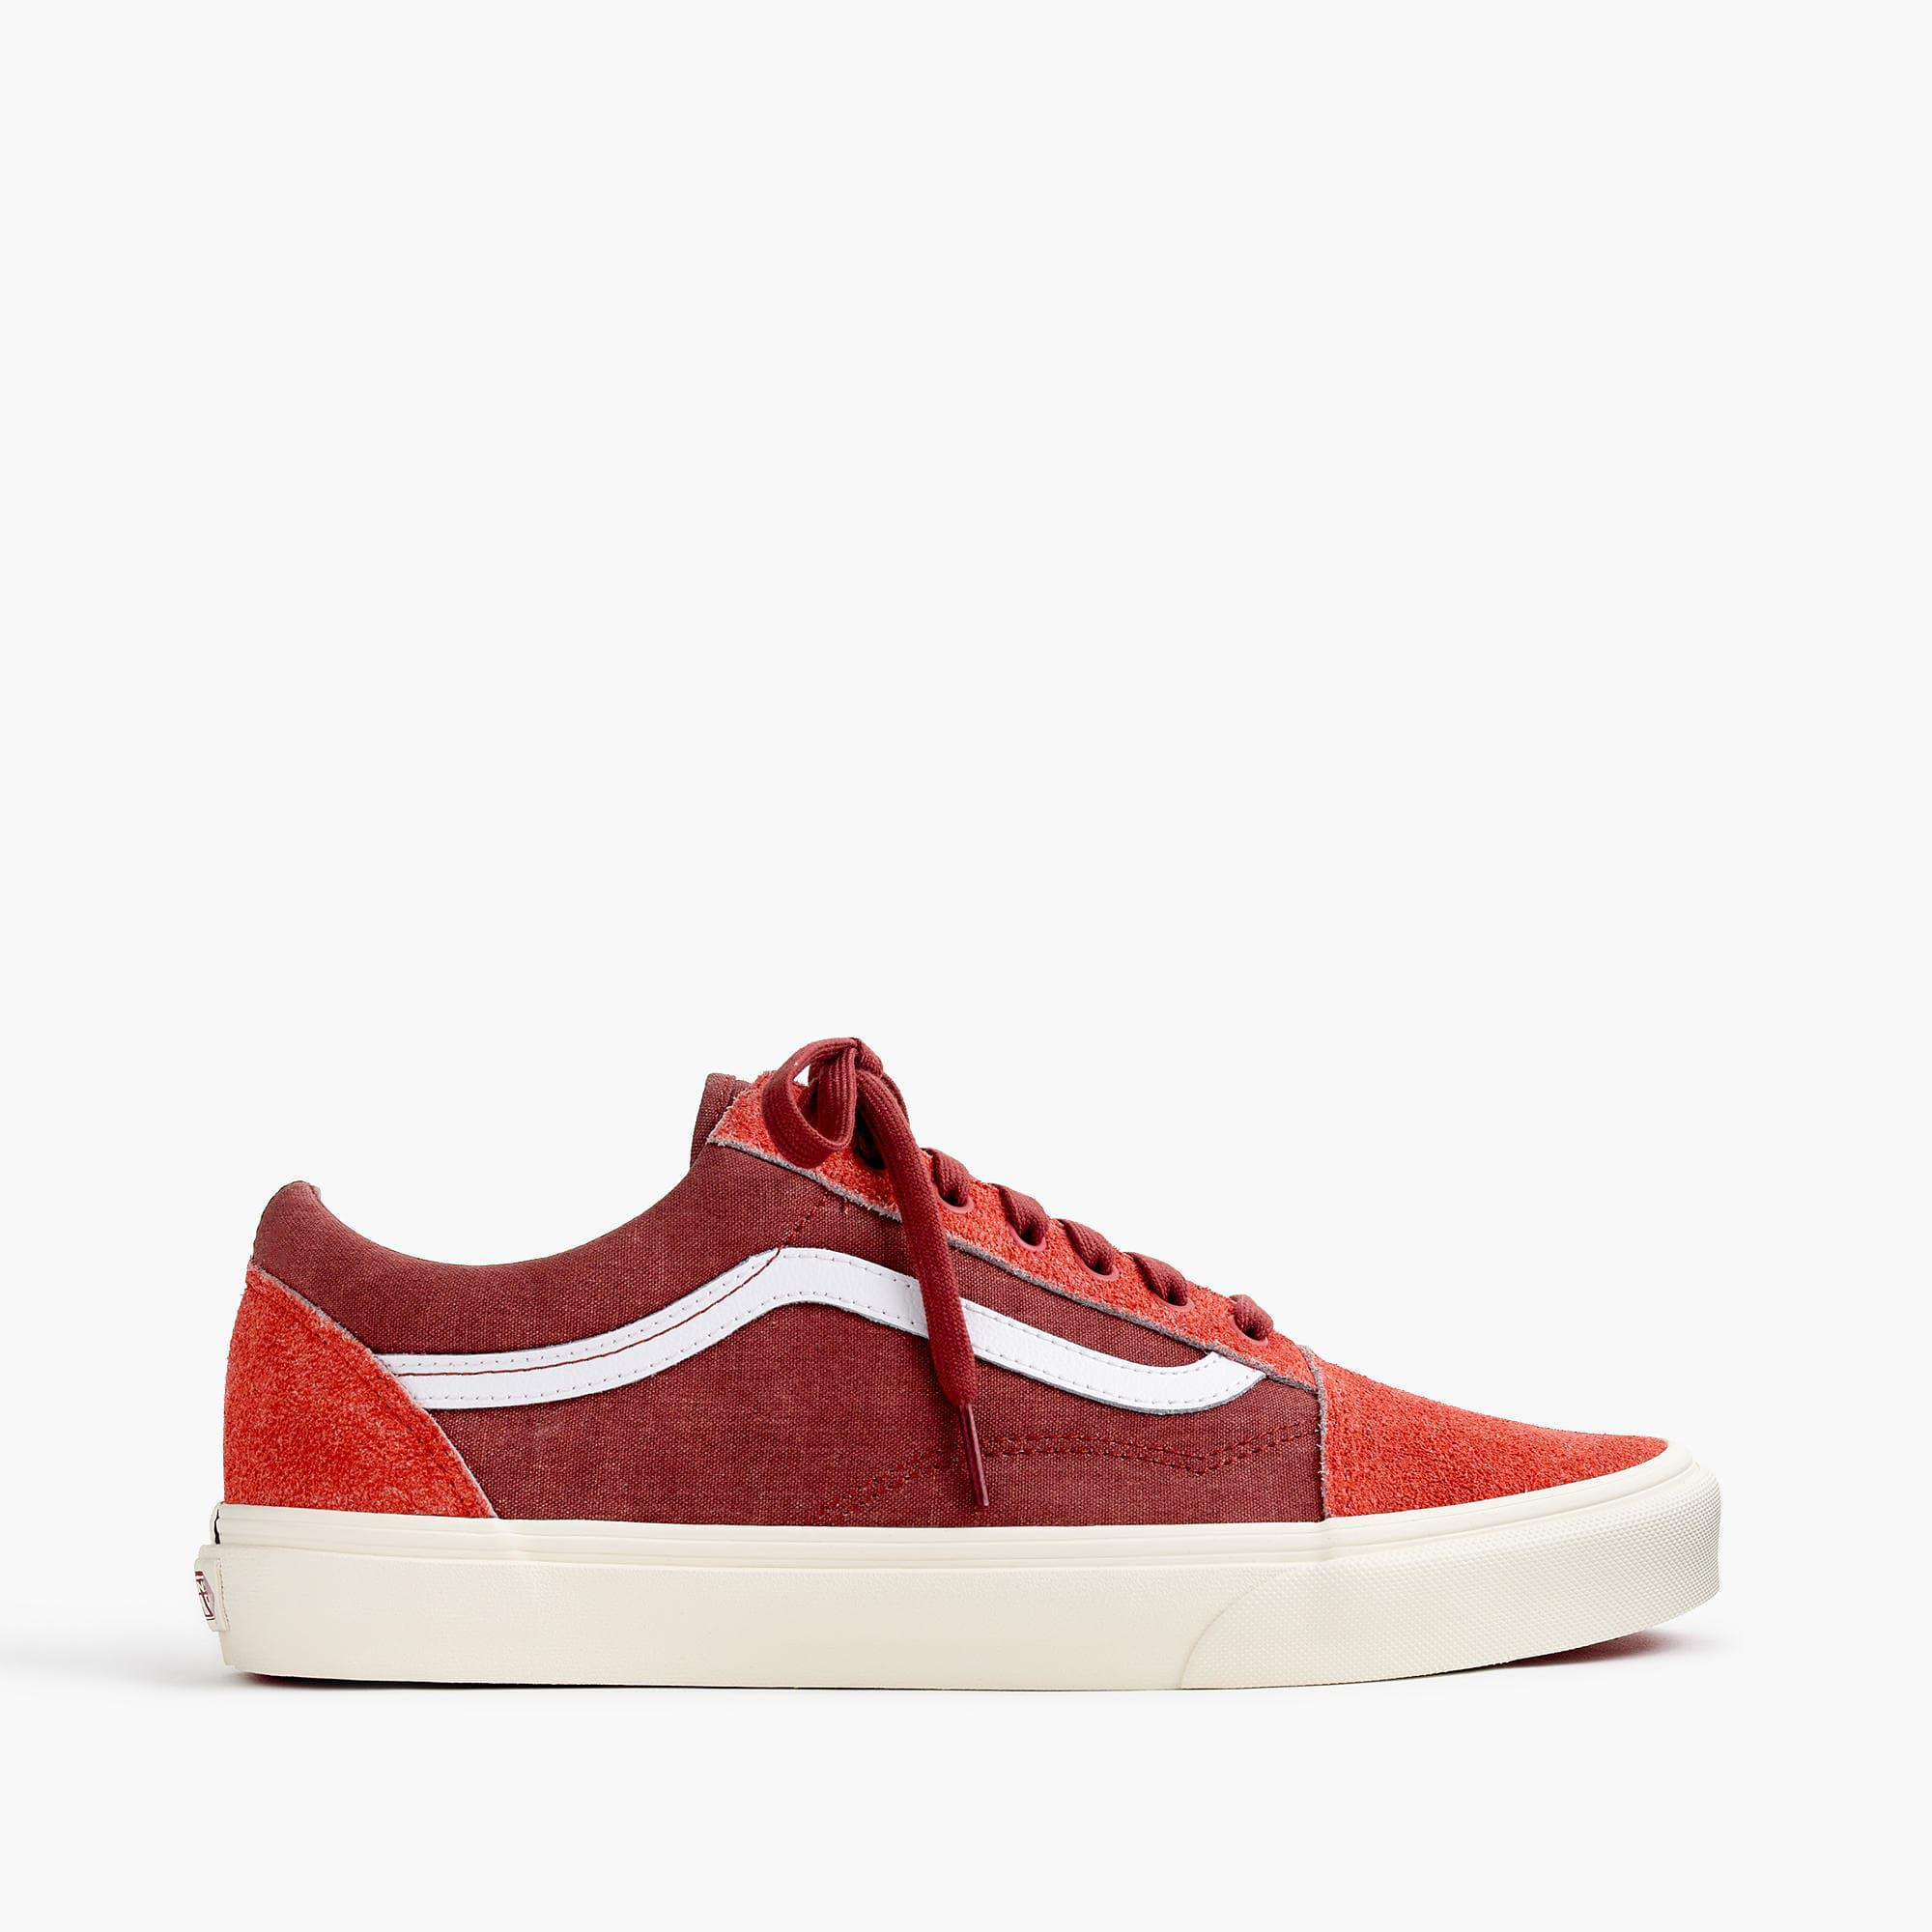 c9464cc24a77 Lyst - Vans Old Skool Sneakers In Washed Canvas in Red for Men